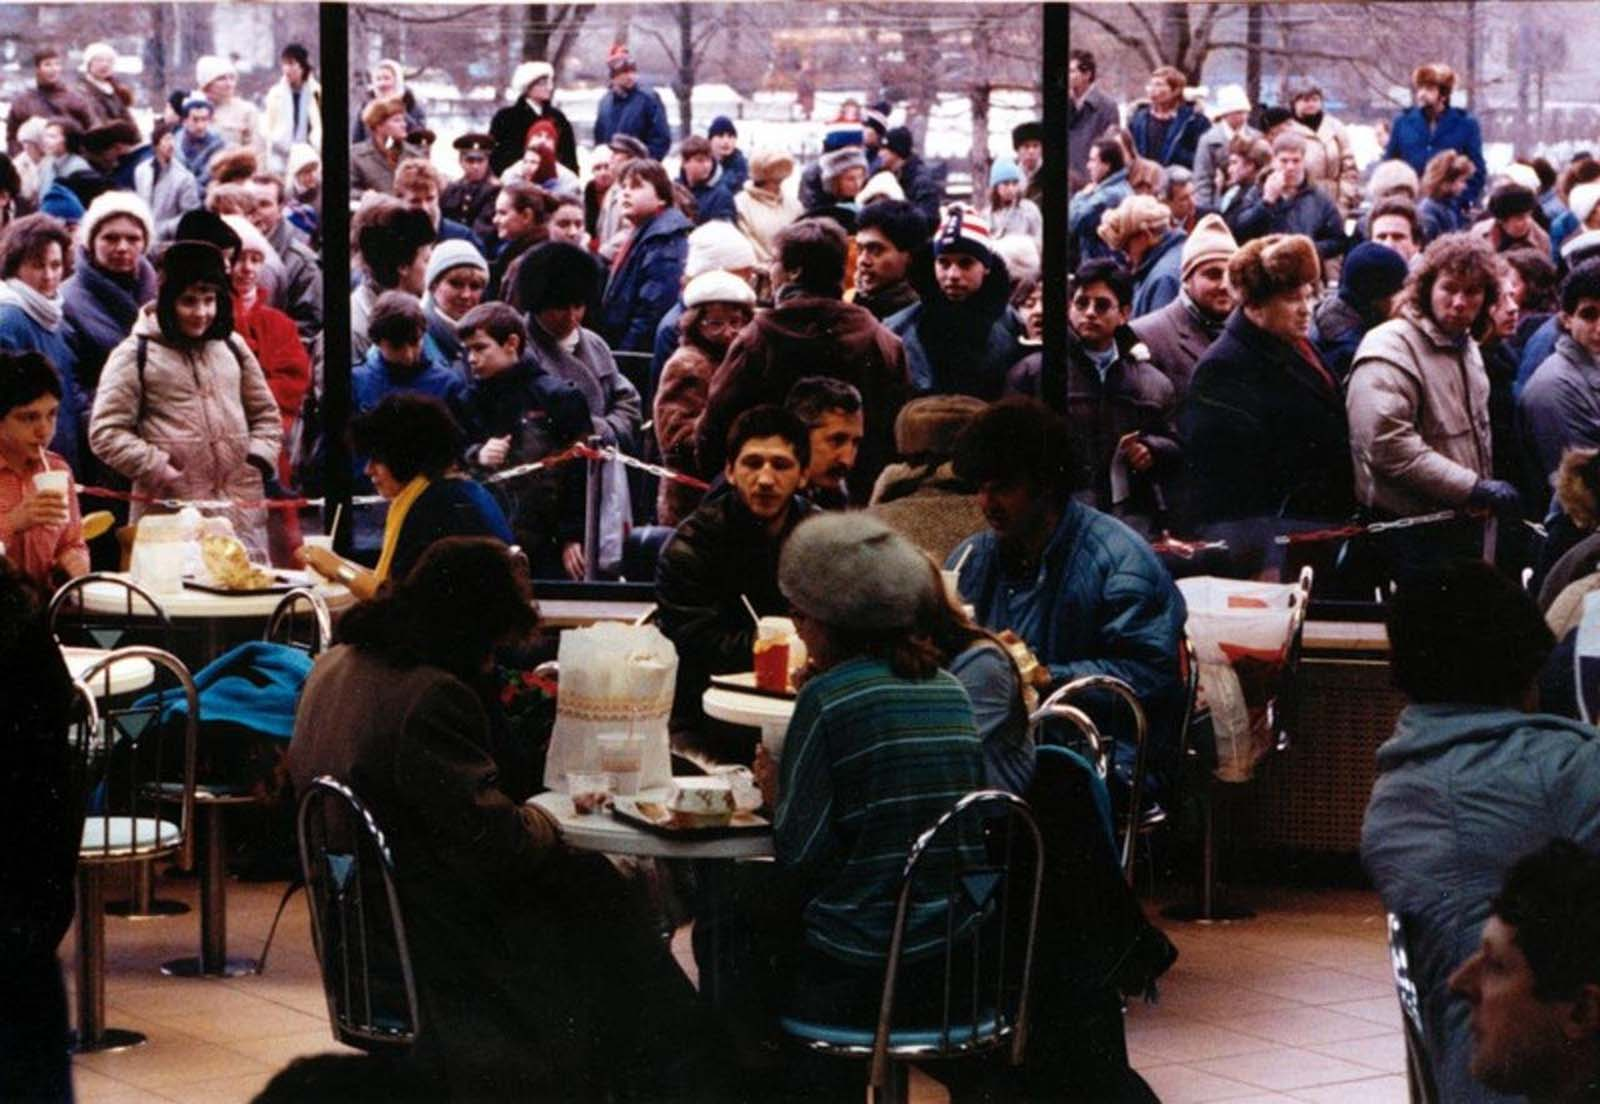 Huge crowd lined up outside the first McDonald's in Moscow.